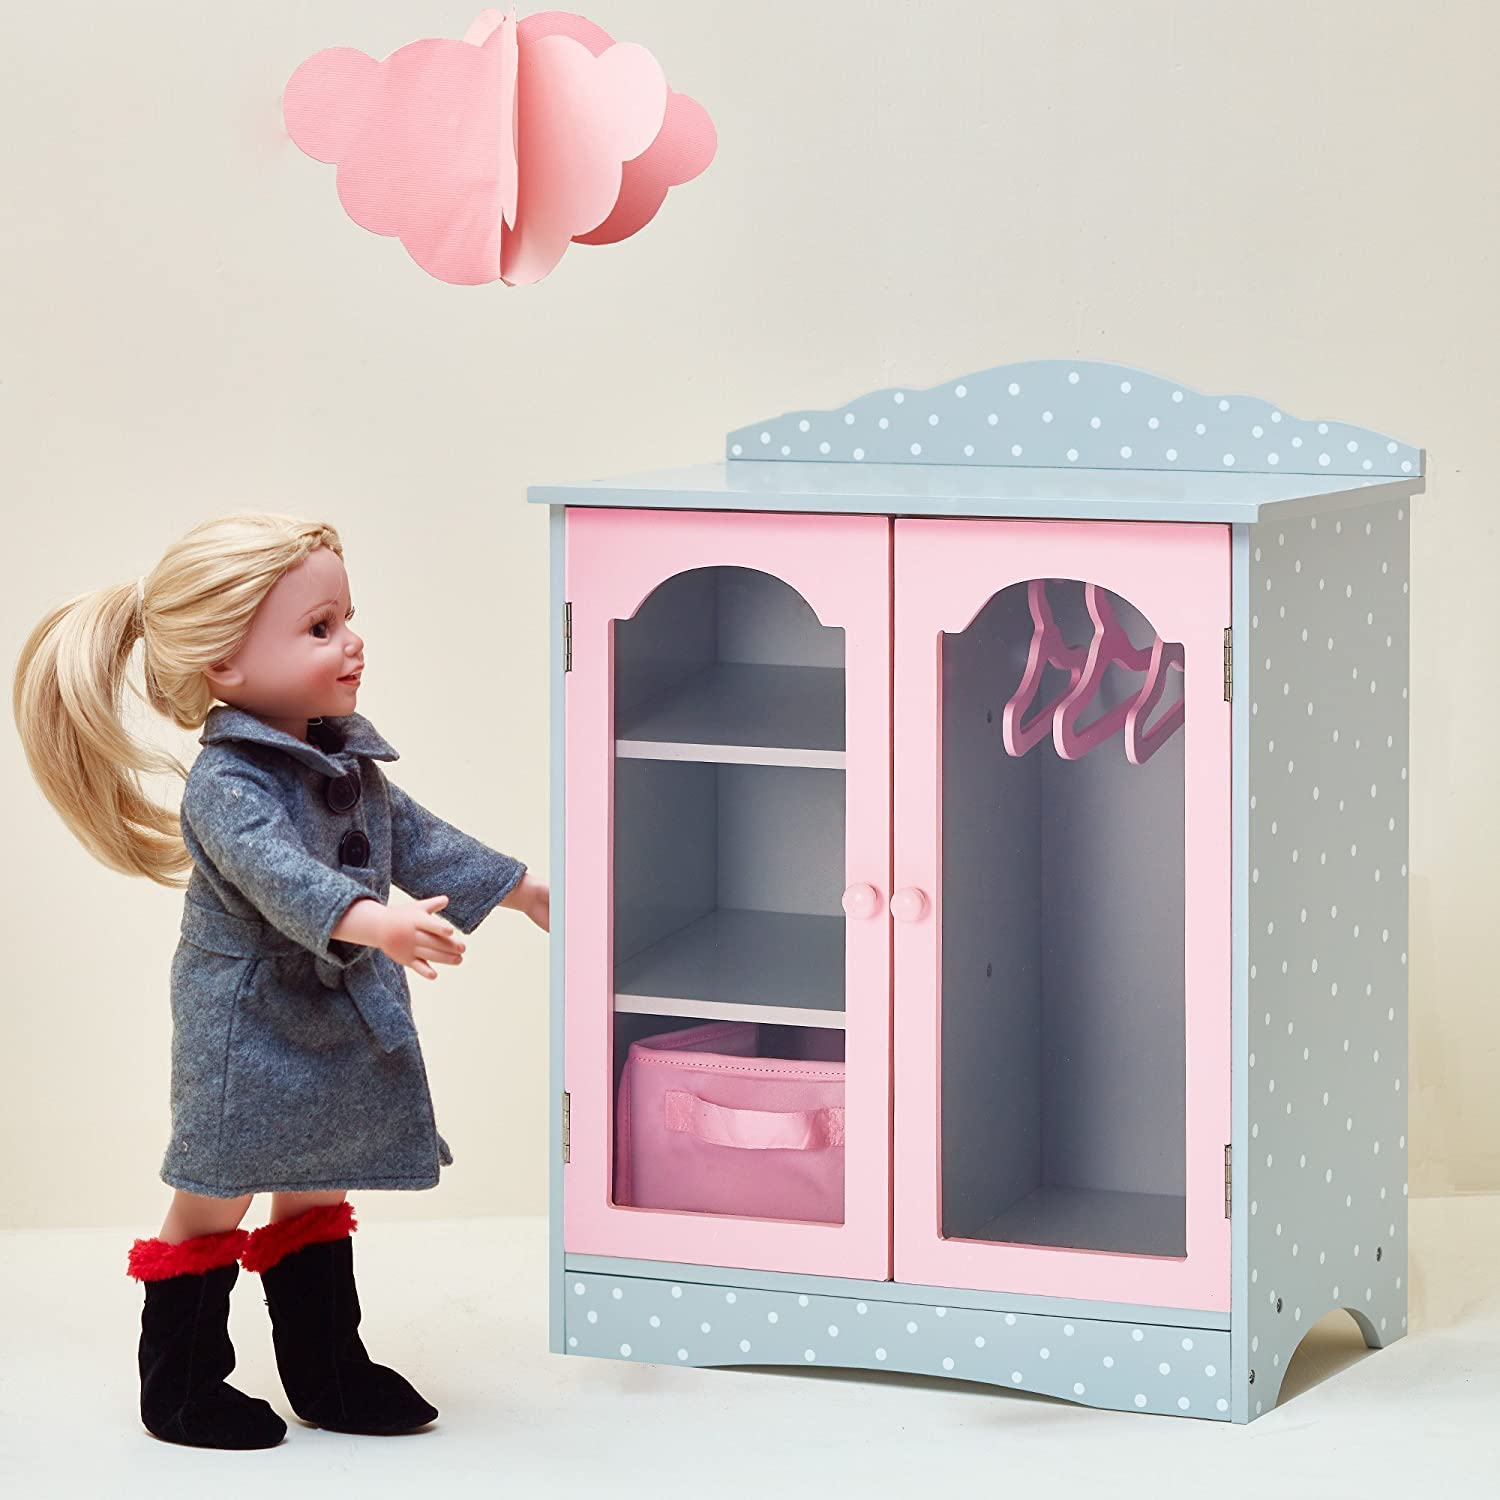   Wooden 18 inch Doll Furniture Olivias Little World Princess Fancy Wooden Closet with 3 Hangers and 1 Cubby White // Pink